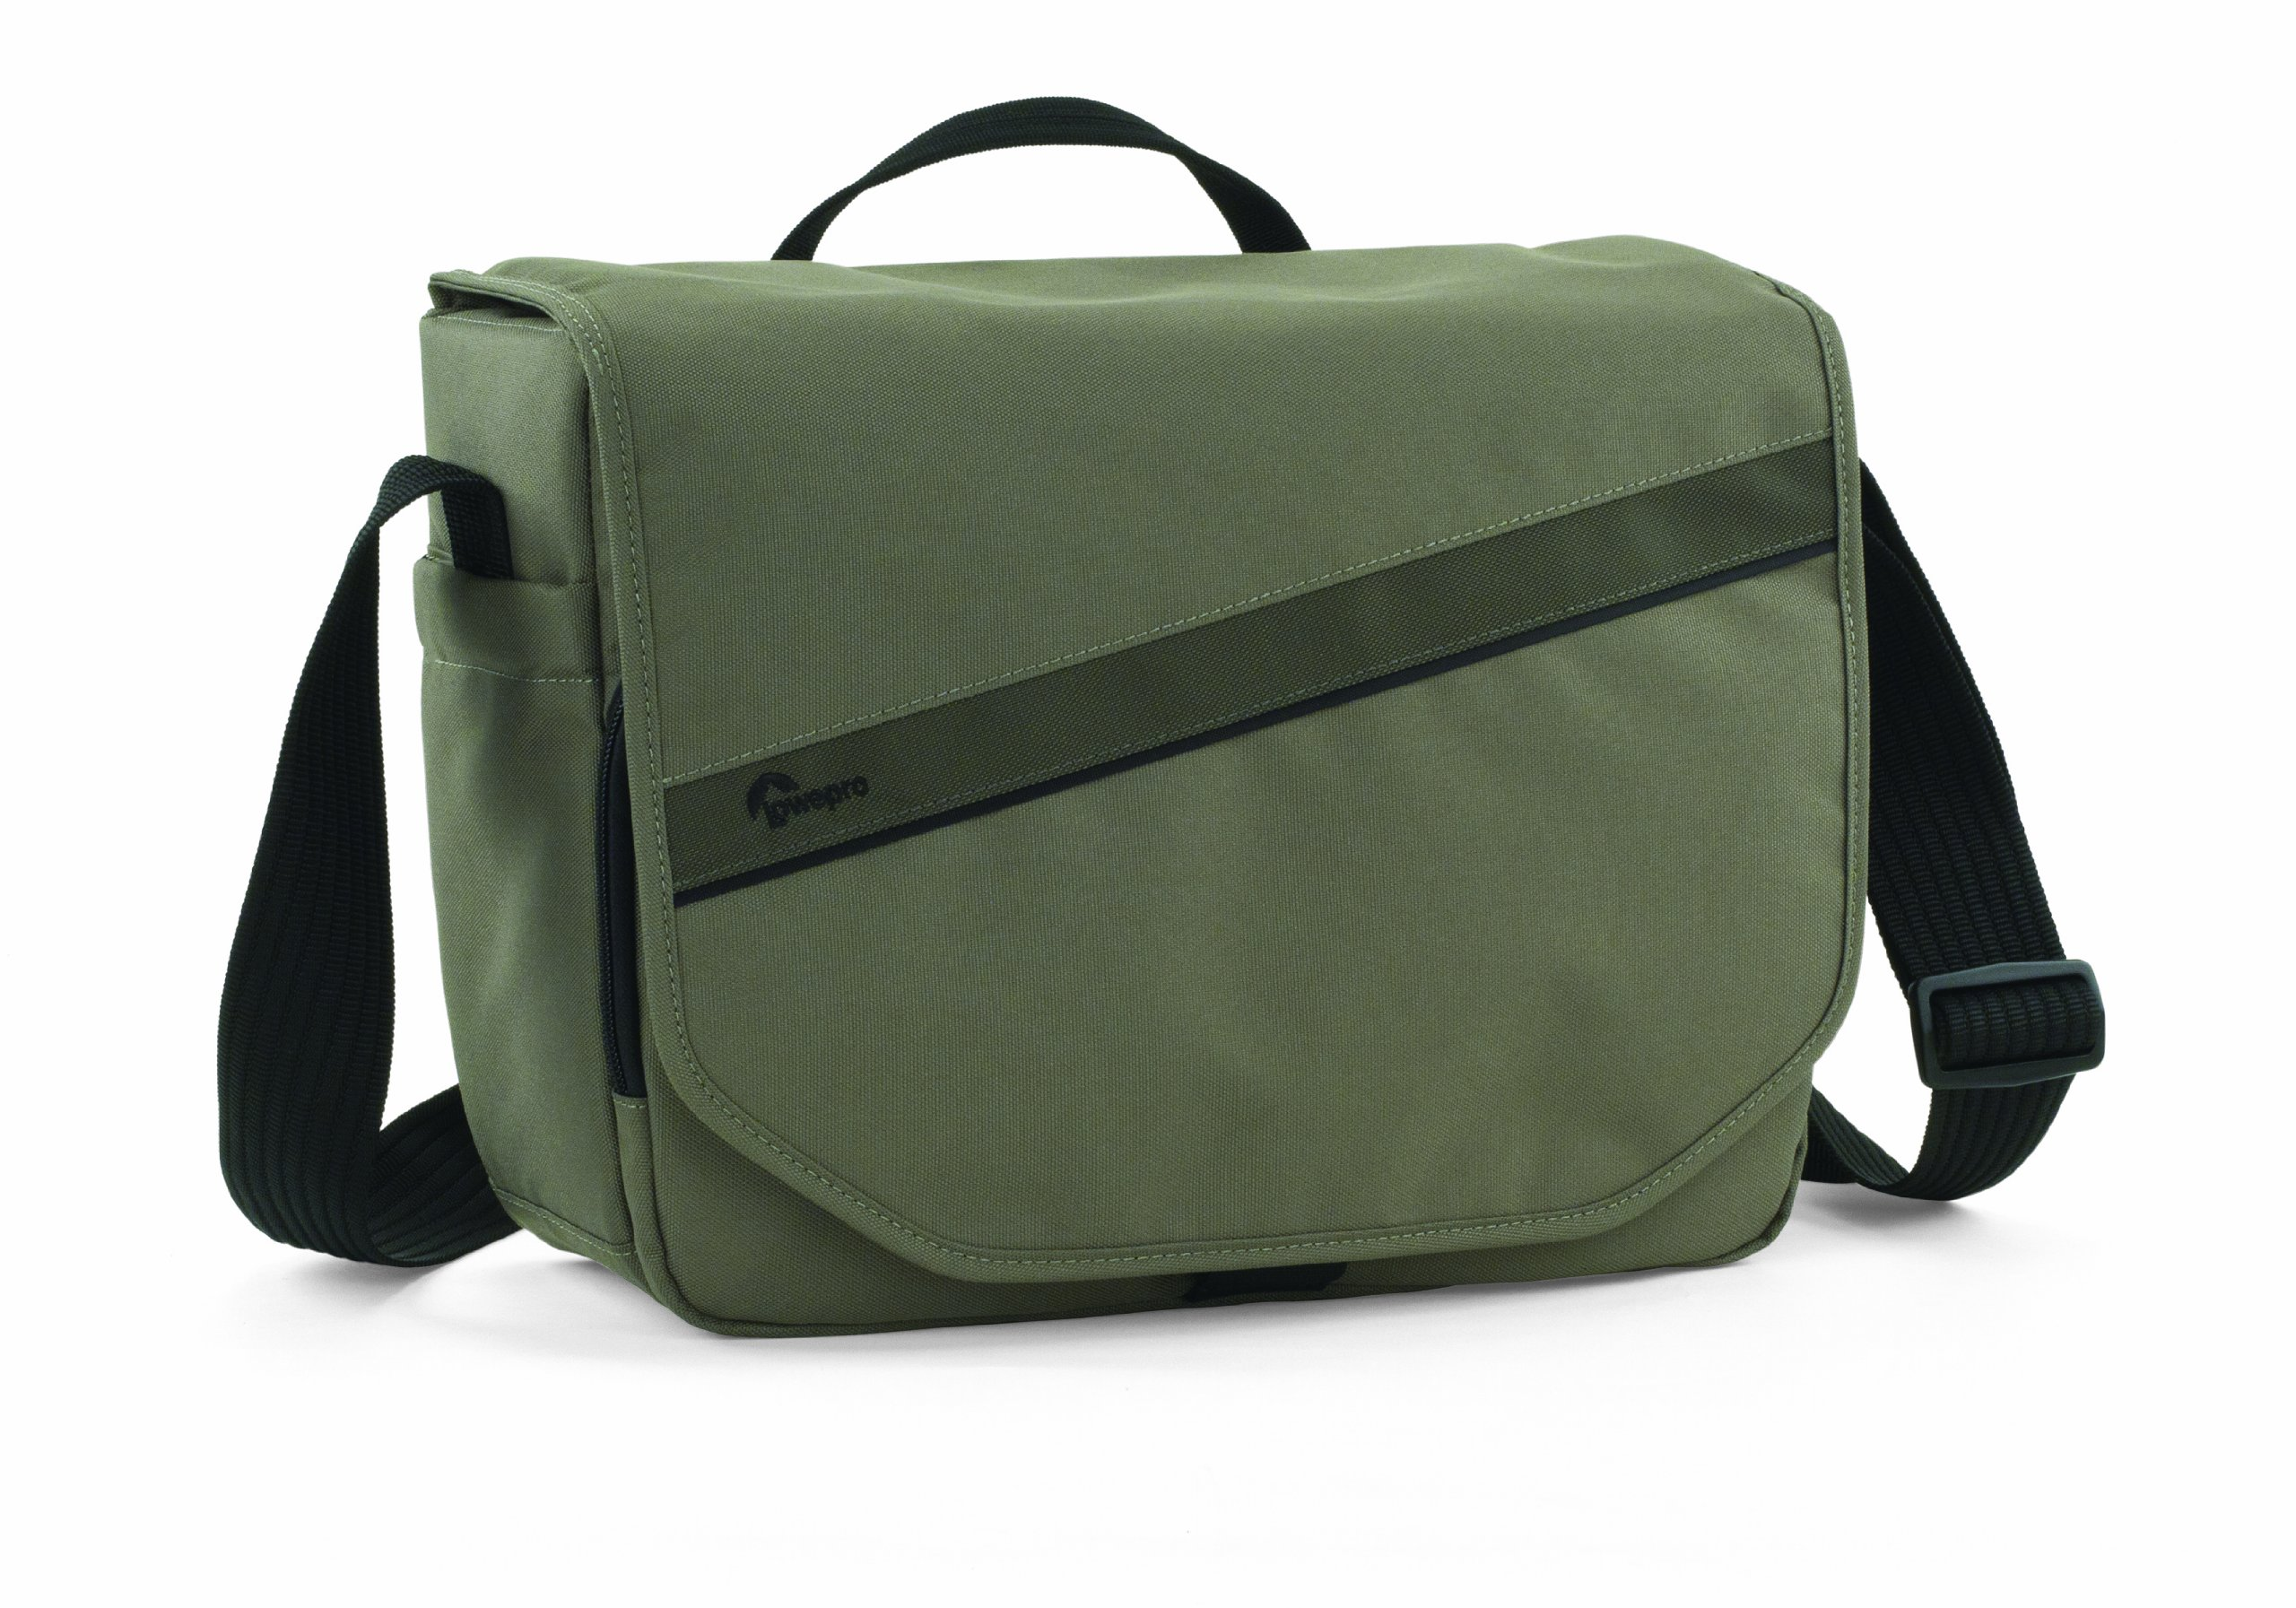 Lowepro Event Messenger 250 Pro DSLR Camera Shoulder Bag